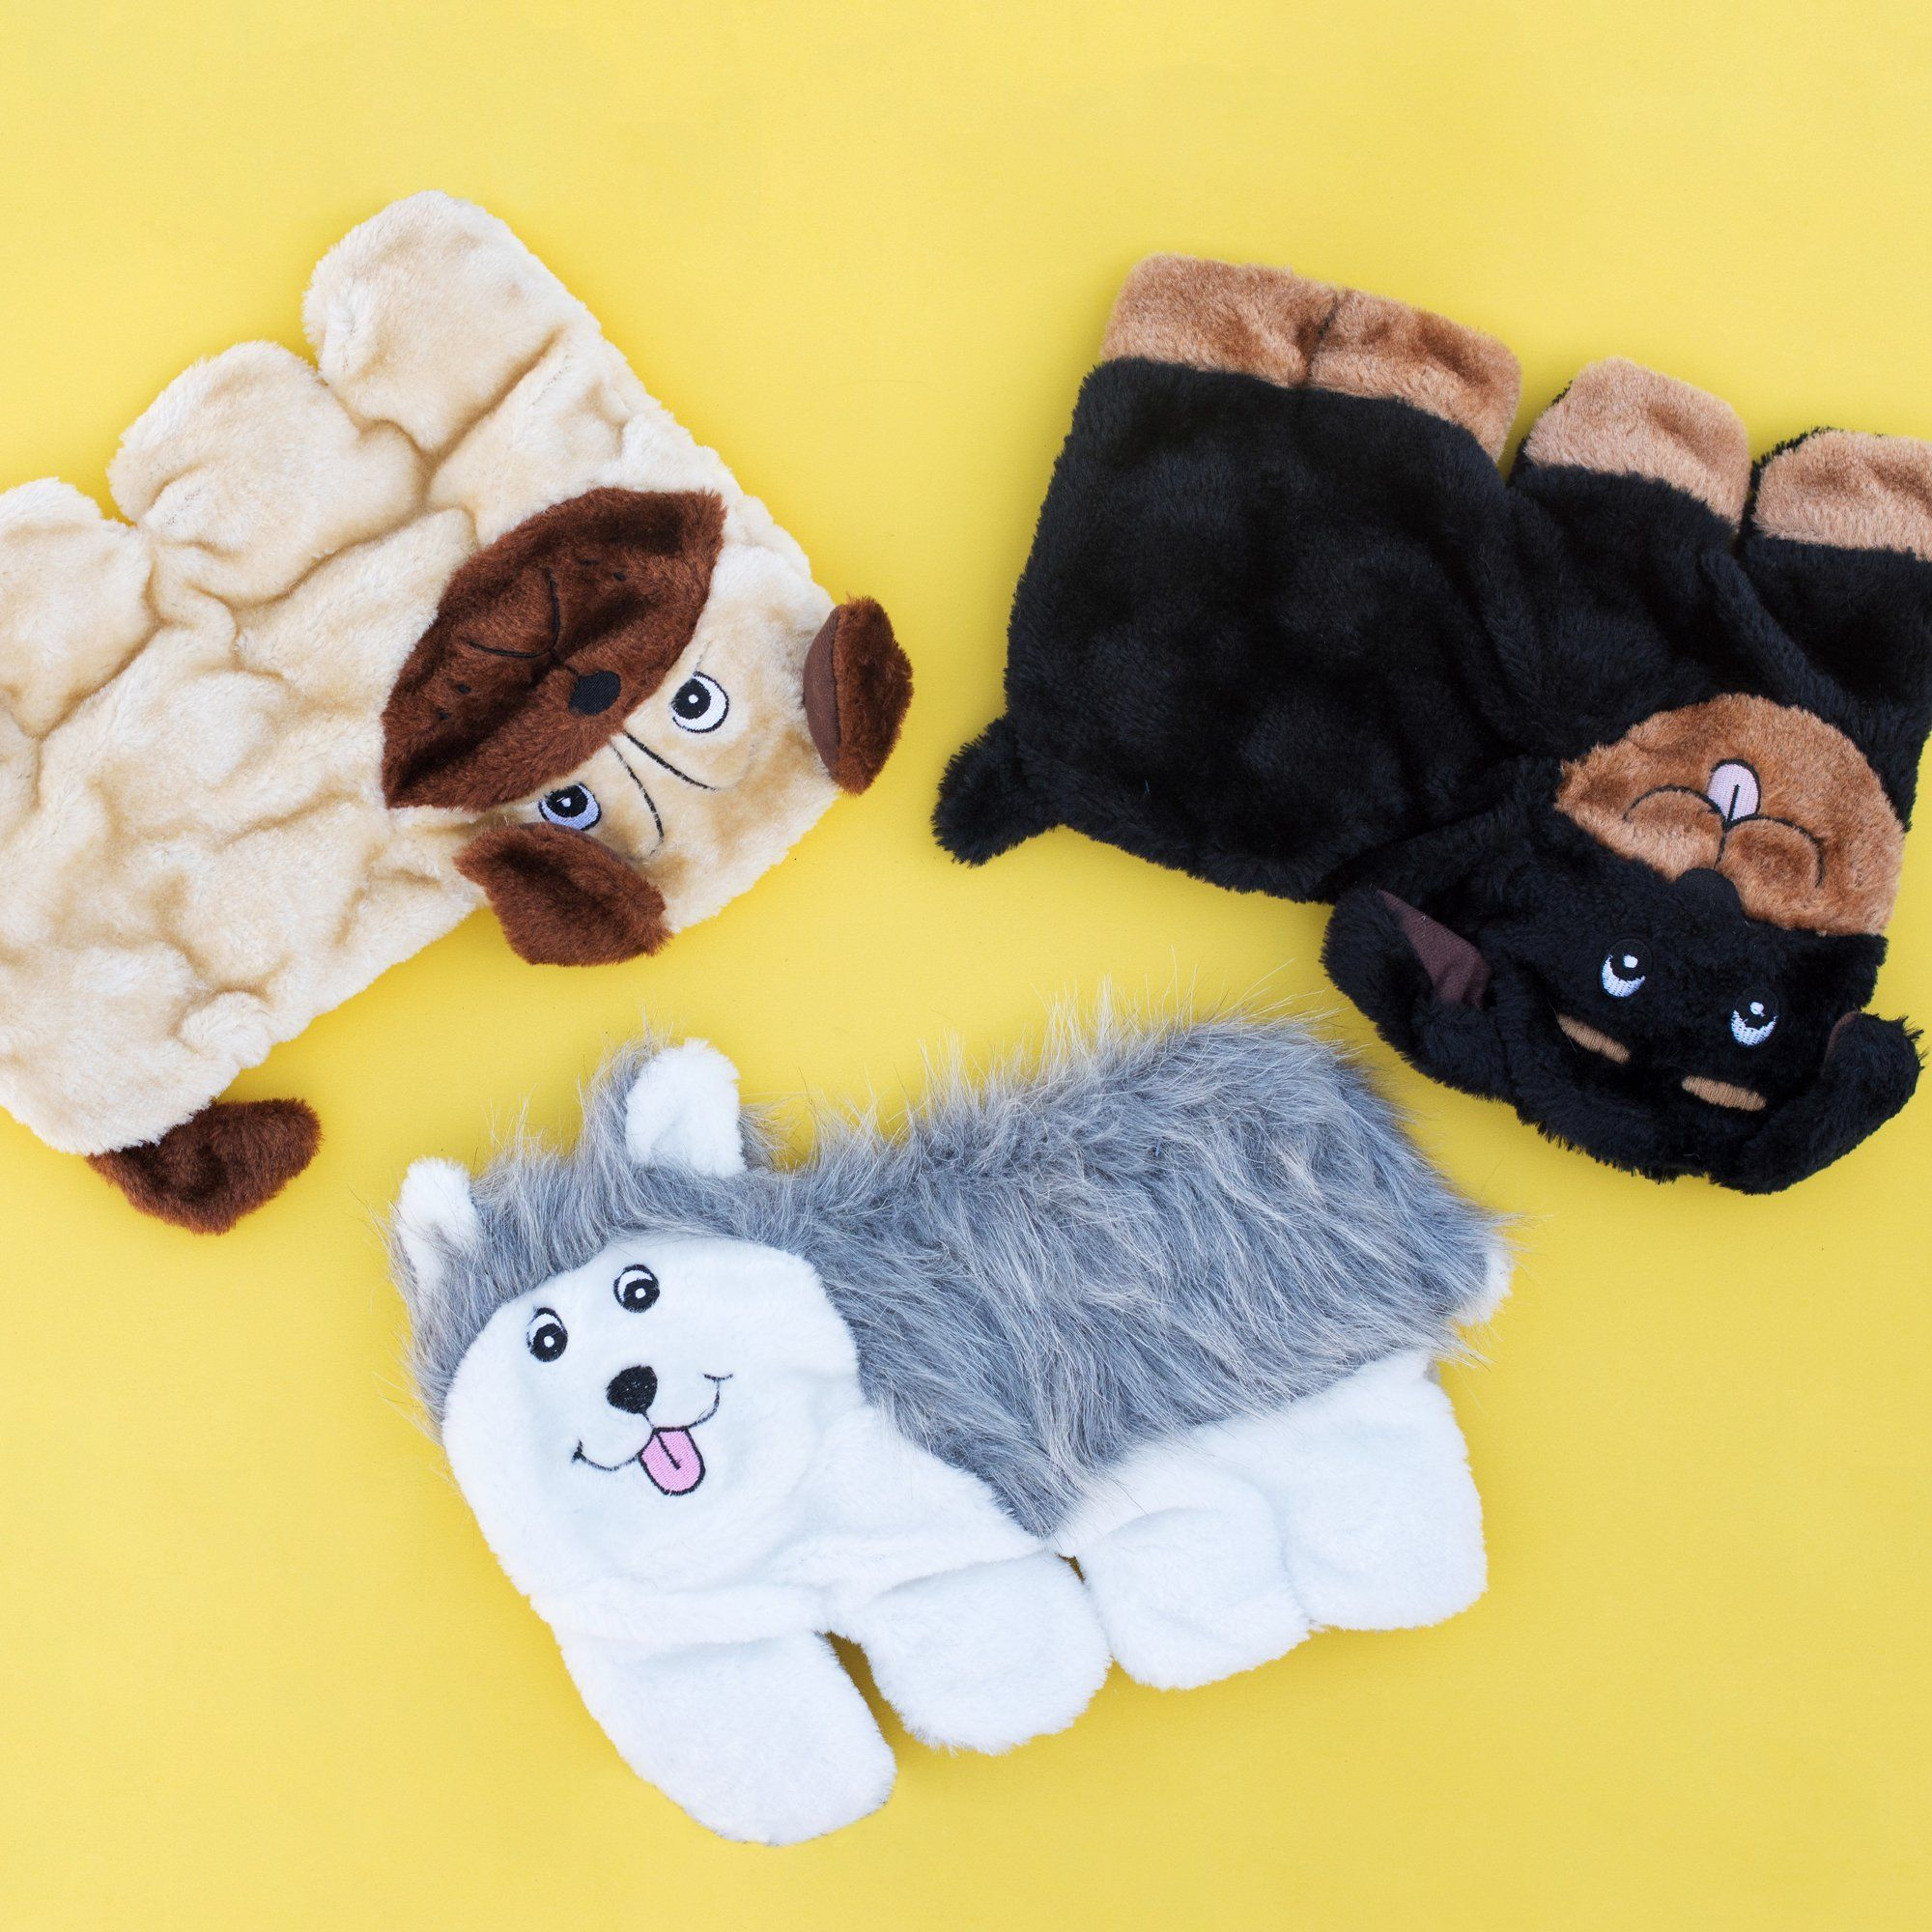 Zippypaws Squeakie Pup Nostuffing Plush Dog Toy 11 Squeakers Husky